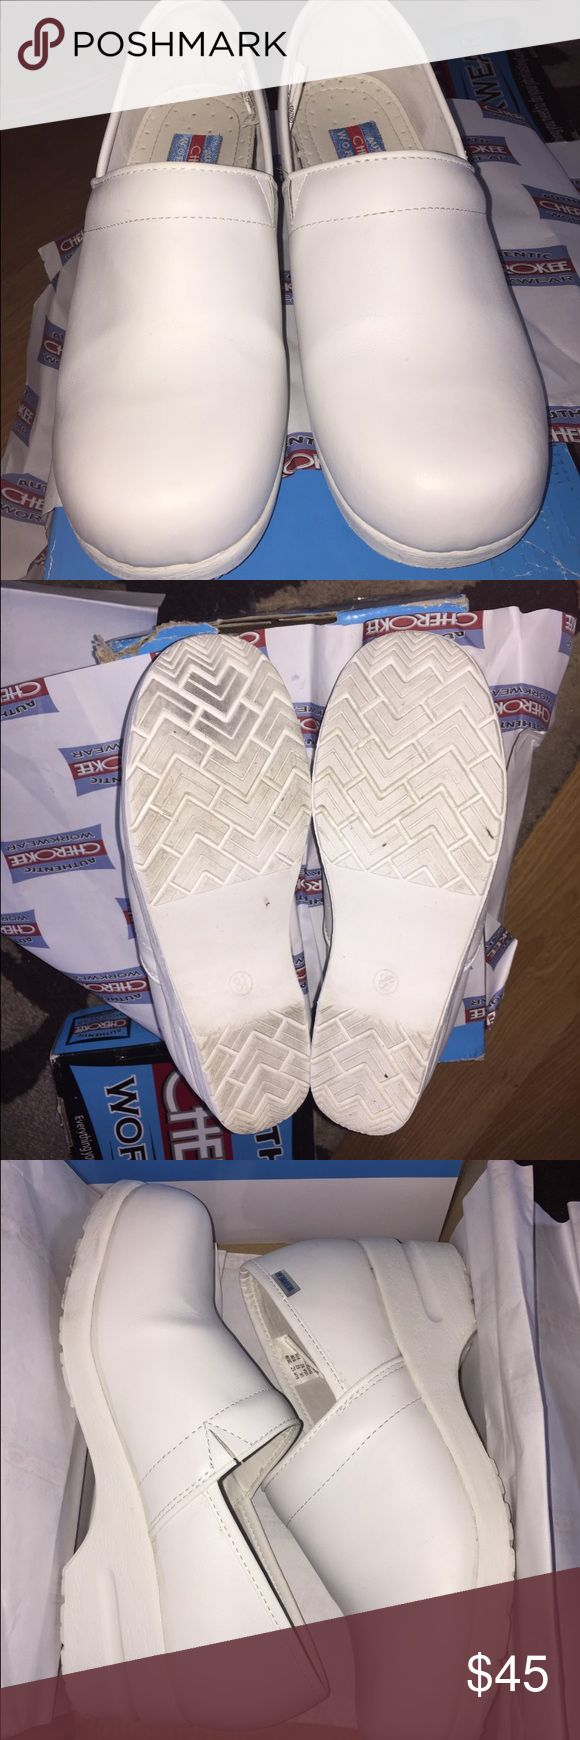 Nursing Shoes Authentic Cherokee Brand Size 8.5 Nursing Shoes Authentic Cherokee Brand Size 8.5 worn 2 days end up not needing them for class so there some normal wear no rips, and stains please see all photos Cherokee Shoes Mules & Clogs